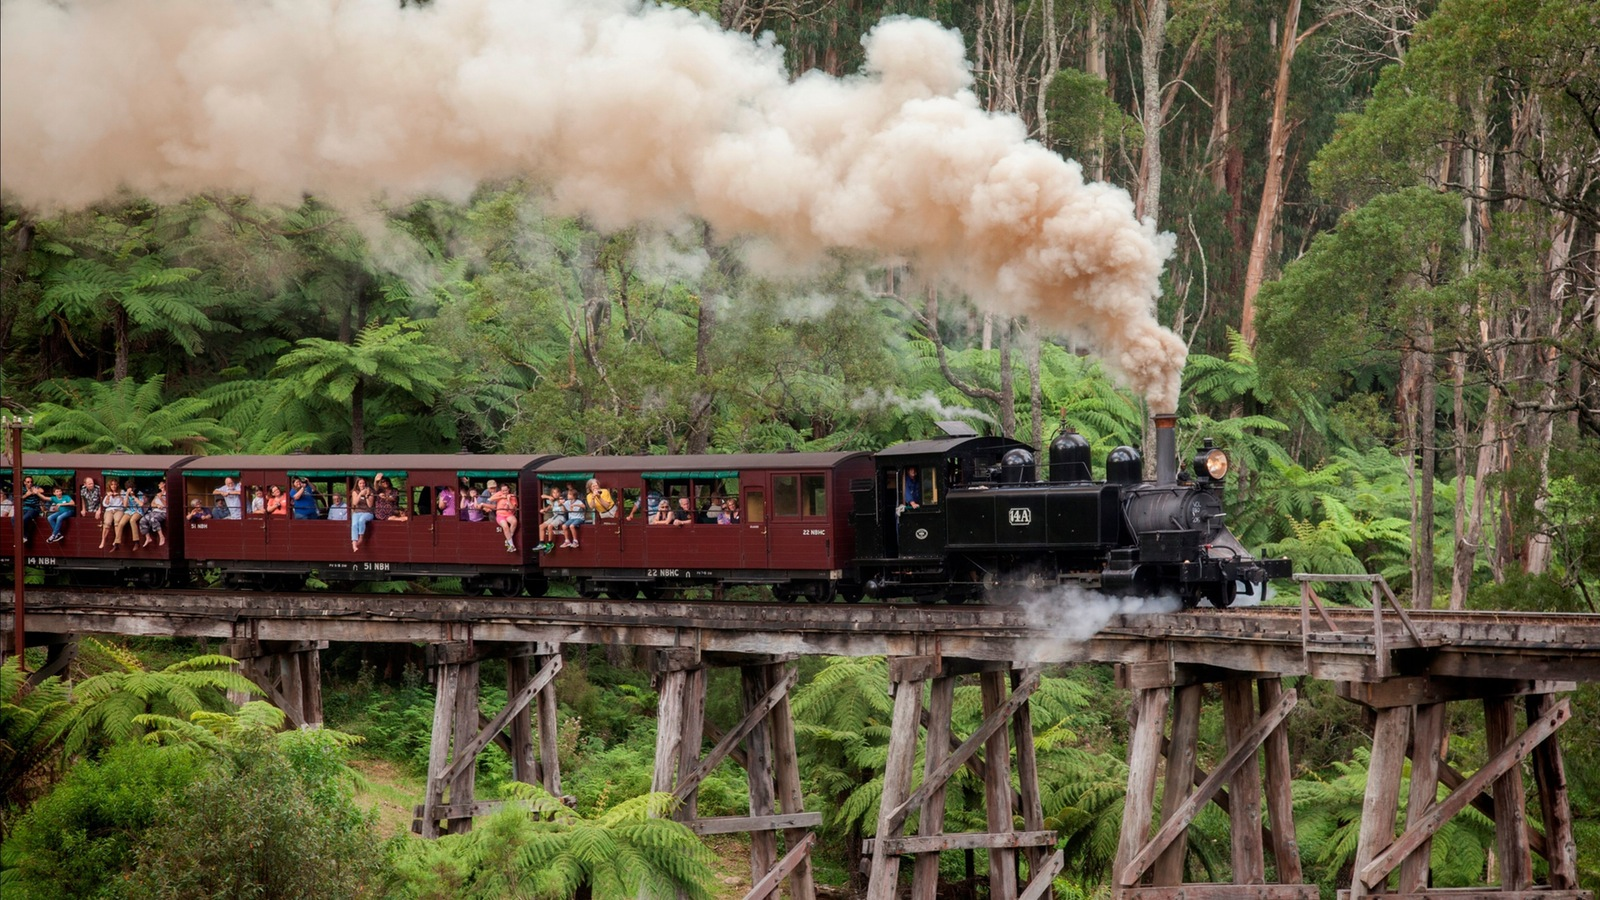 Puffing Billy Railway travels over the historic Trestle Bridge